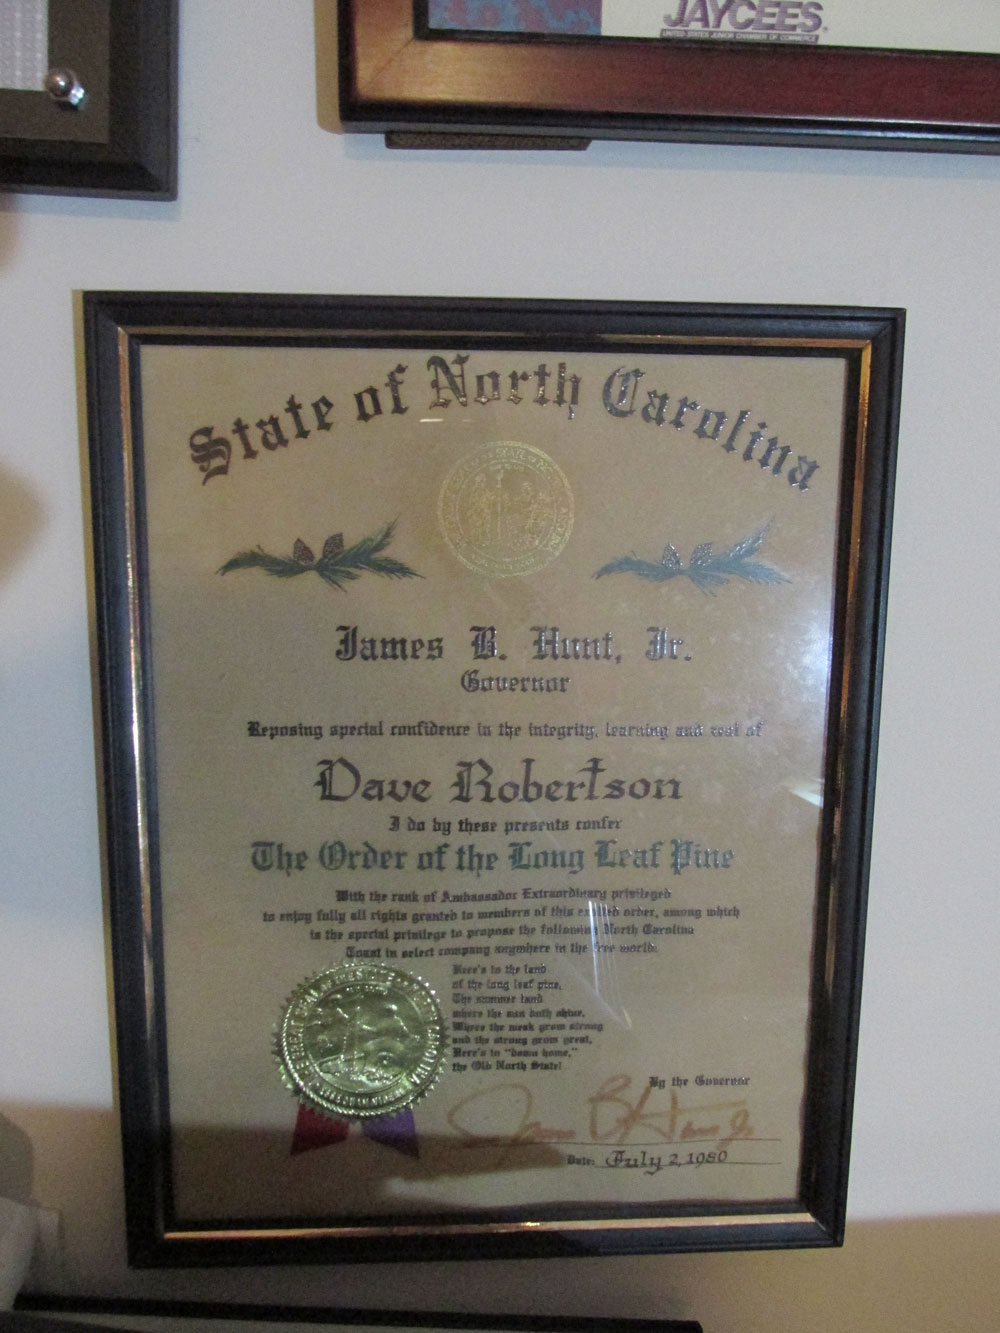 Awarded Order of the Long Leaf Pine  by Gov. Jim Hunt in 1980 for extensive volunteer work helping needy  children